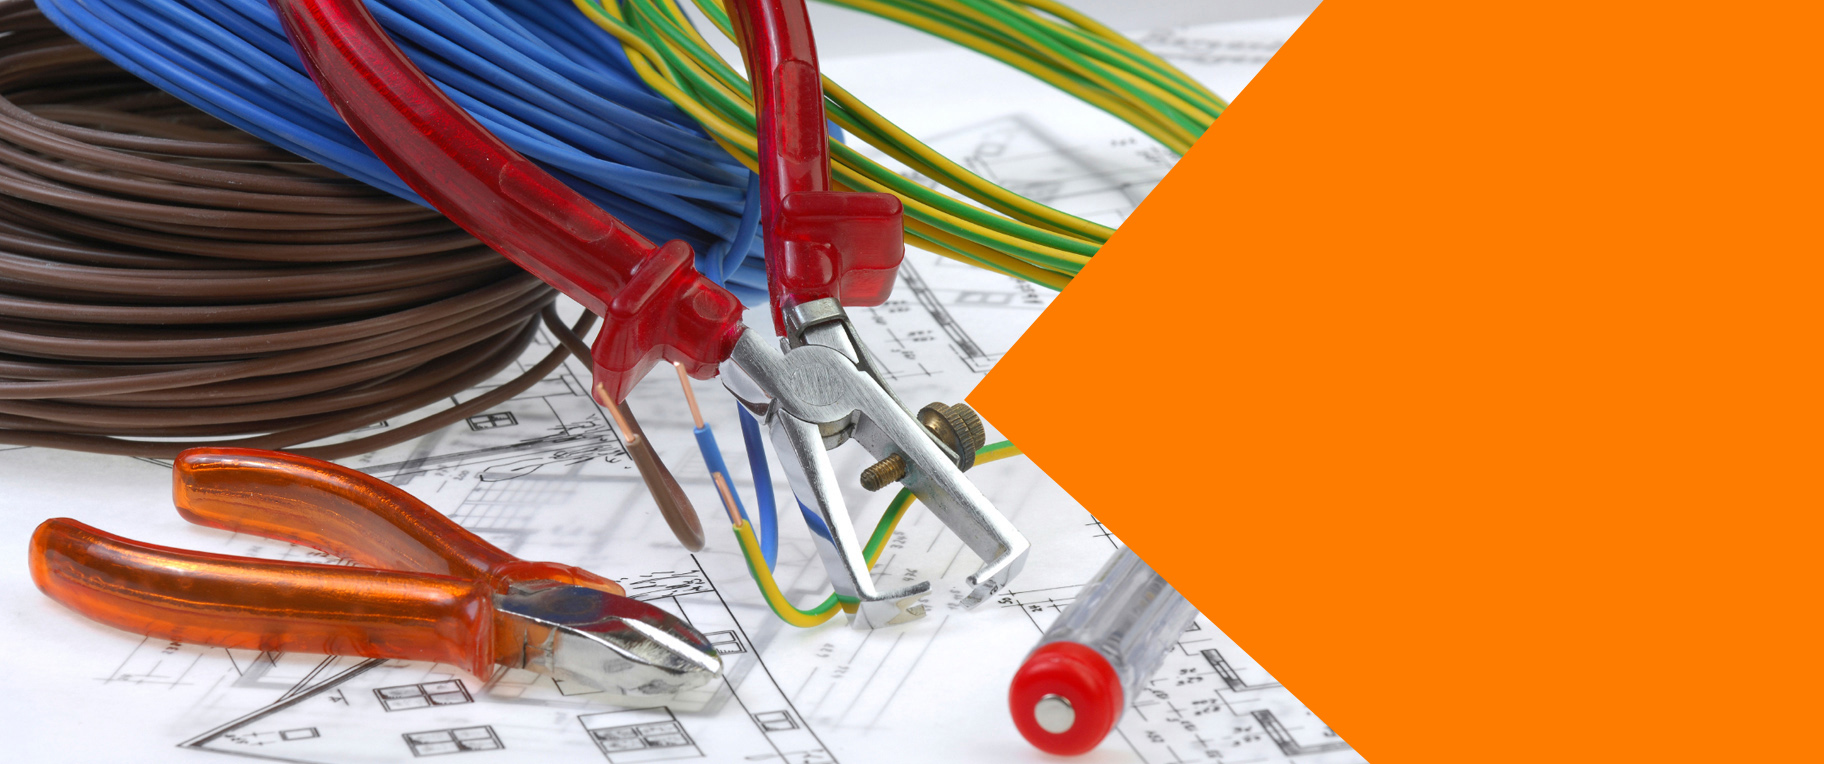 Oakantswe Construction Projects Cc Electrical Works Wiring Certificate South Africa Network Installations